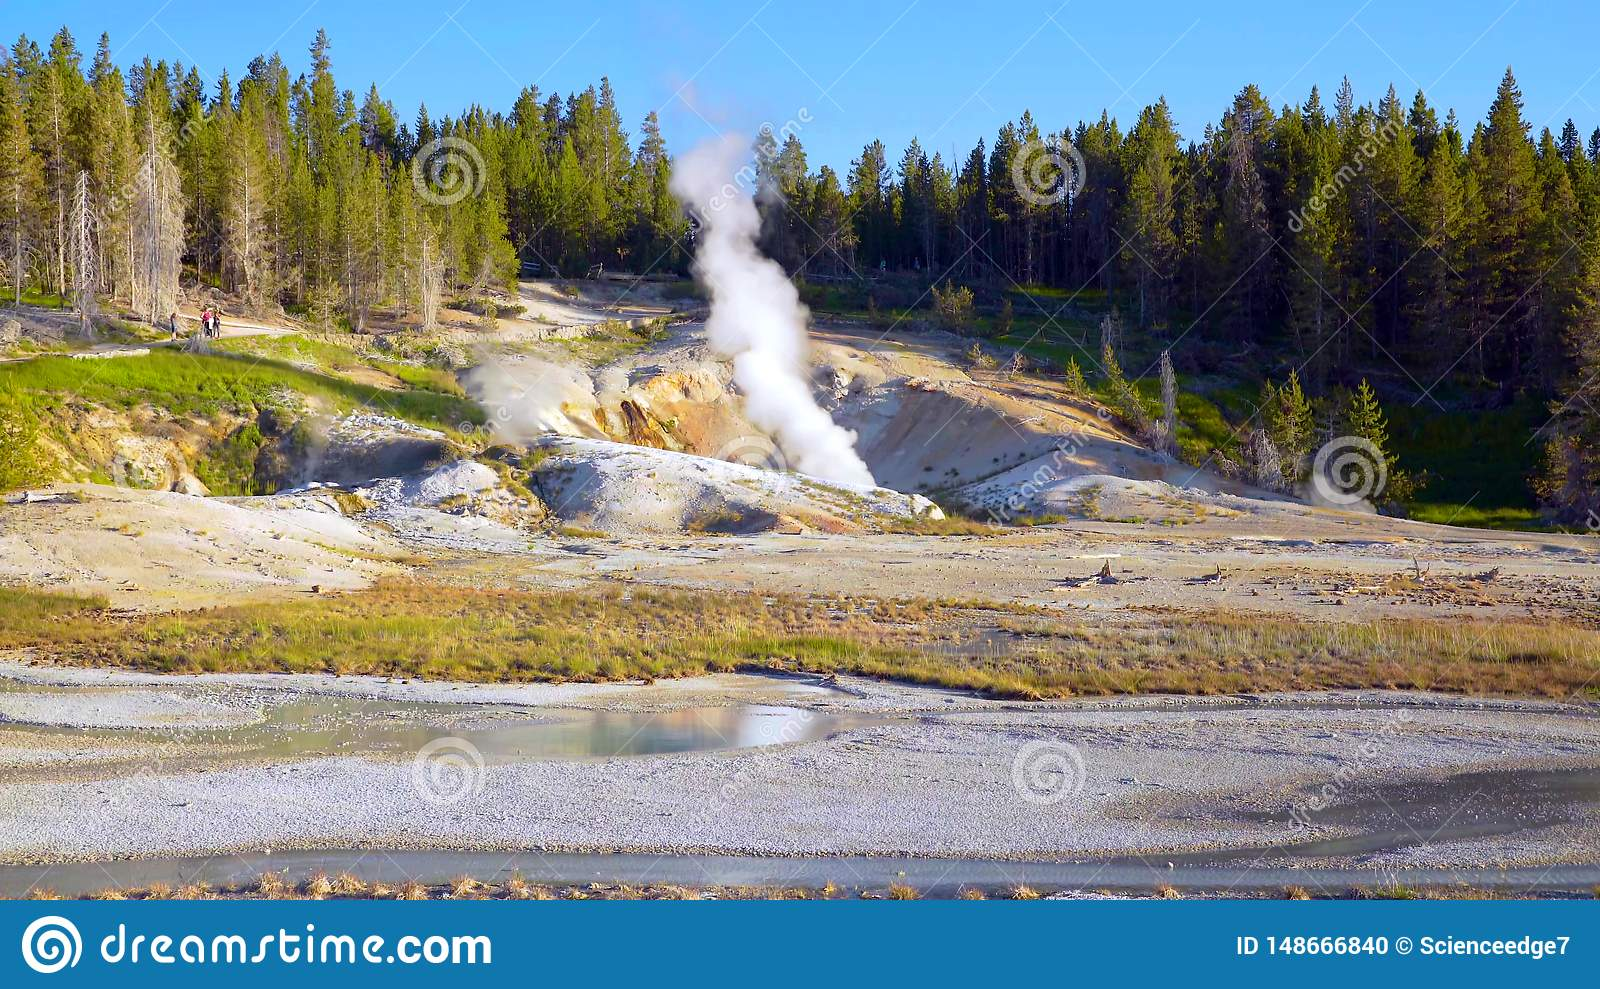 Stock image of Porcelain Basin Trail in Norris Geyser Basin, Yellowstone National Park, USA